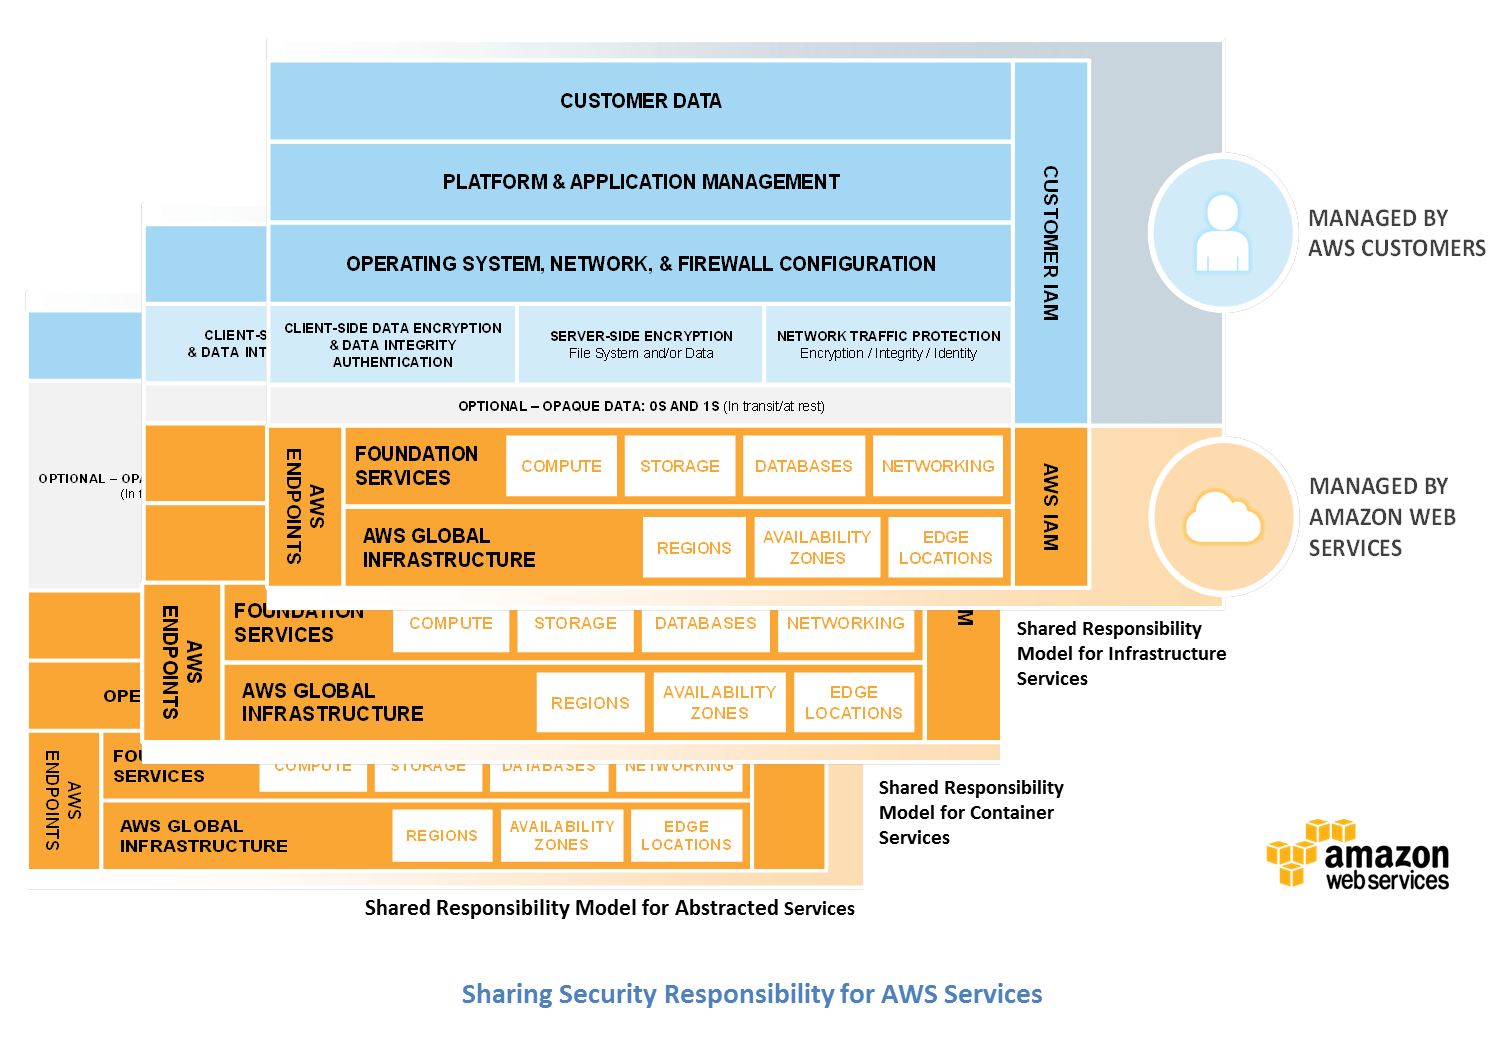 Diagram of AWS's Shared Responsibility Model